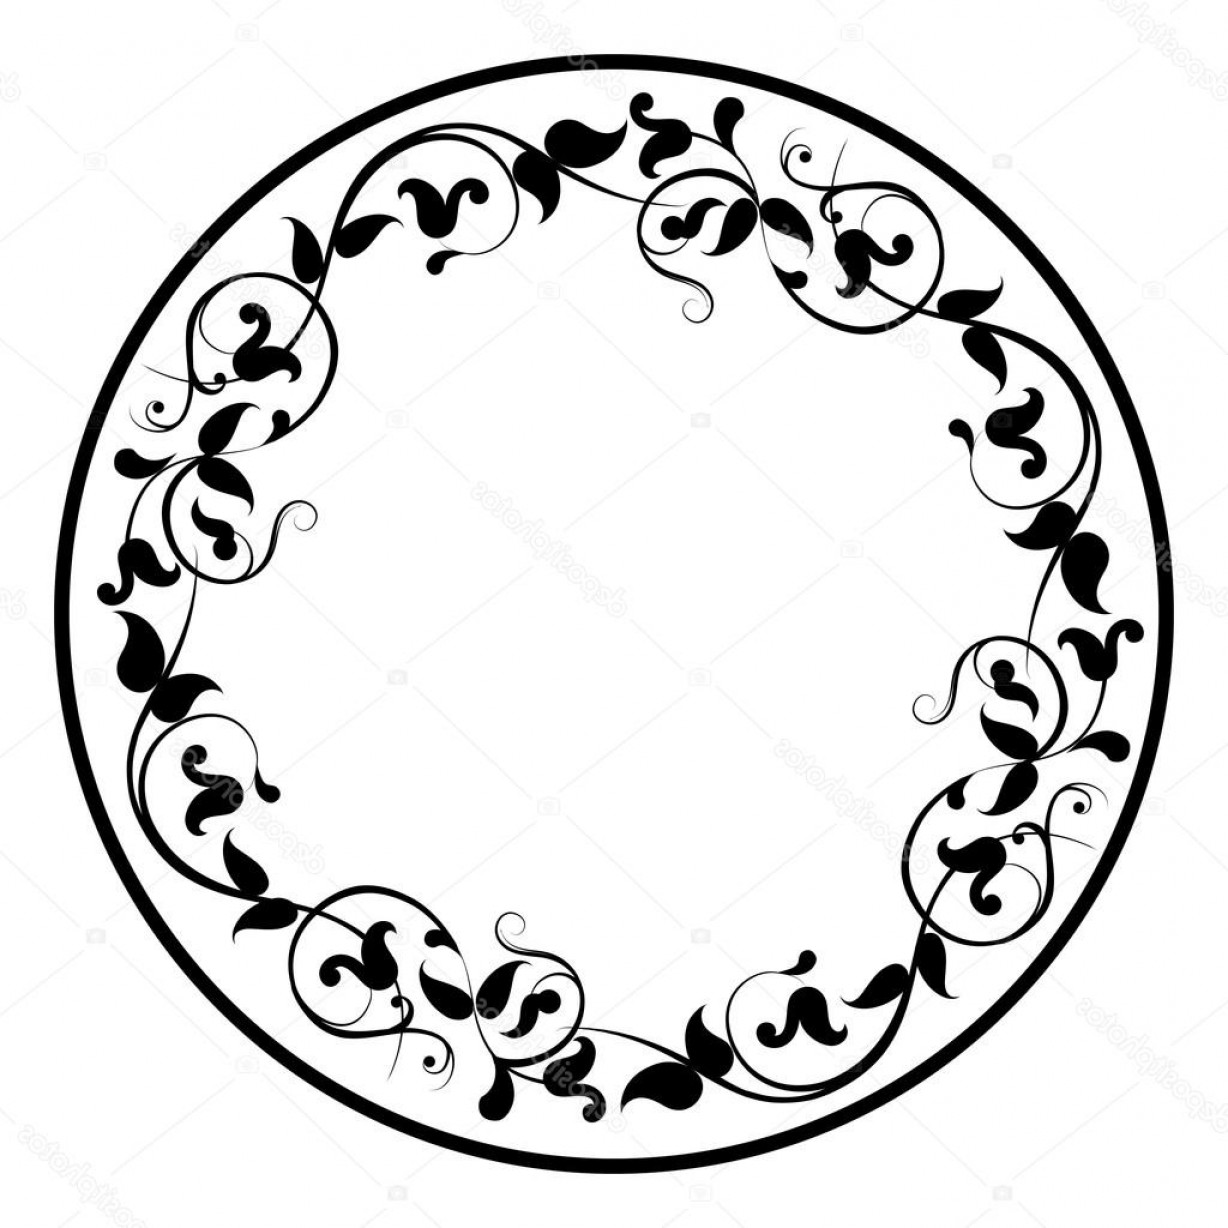 Filigree Oval Frame Vector: Stock Illustration Floral Round Filigree Frame